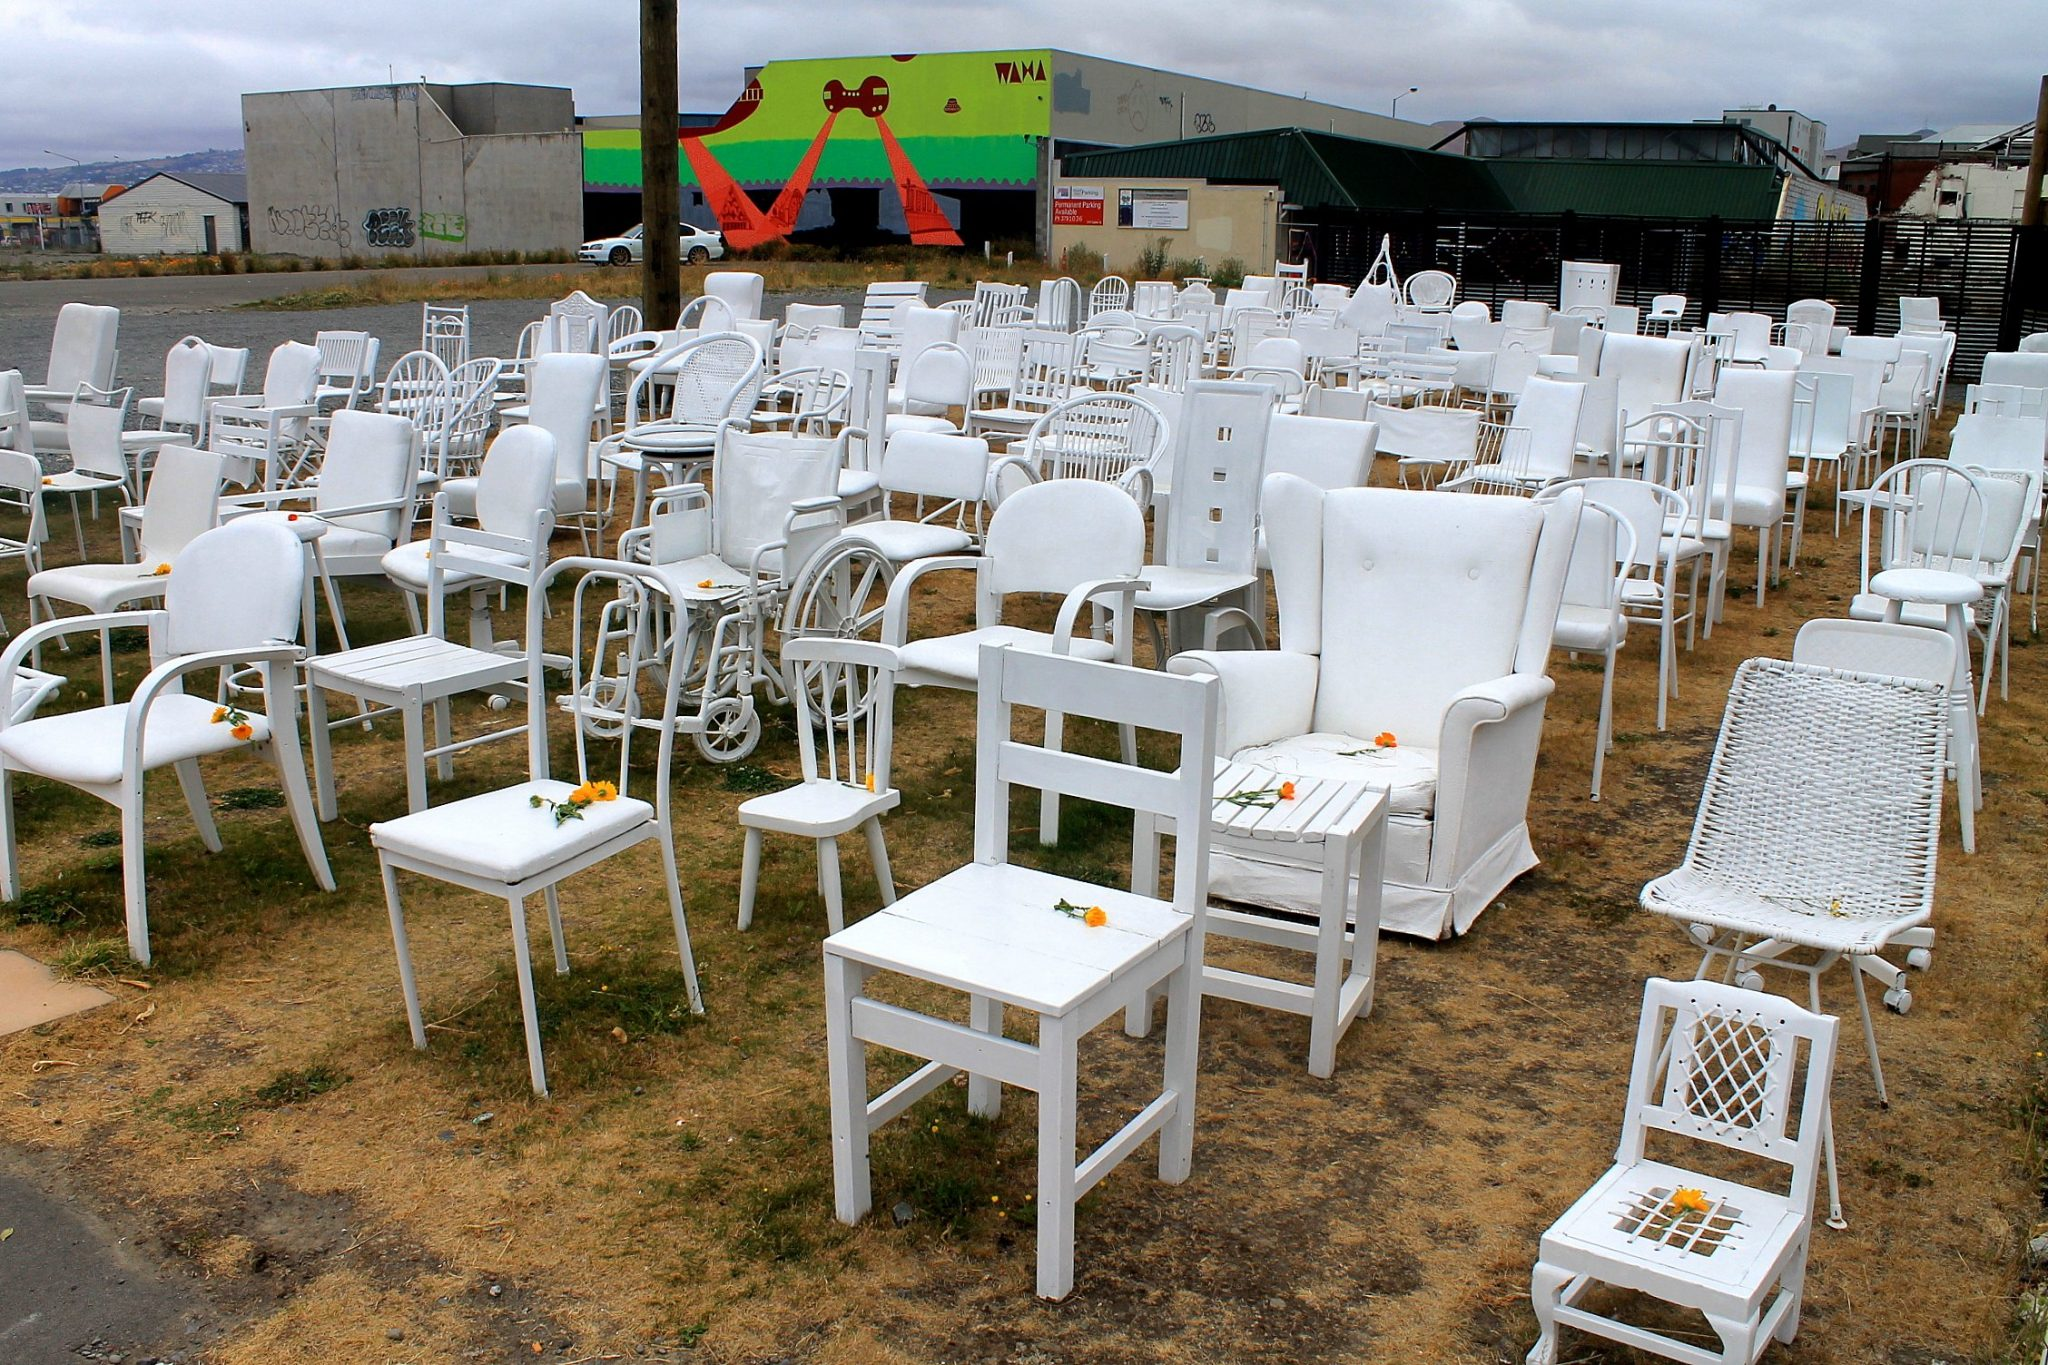 185 Empty White Chairs - Christchurch Earthquake Memorial